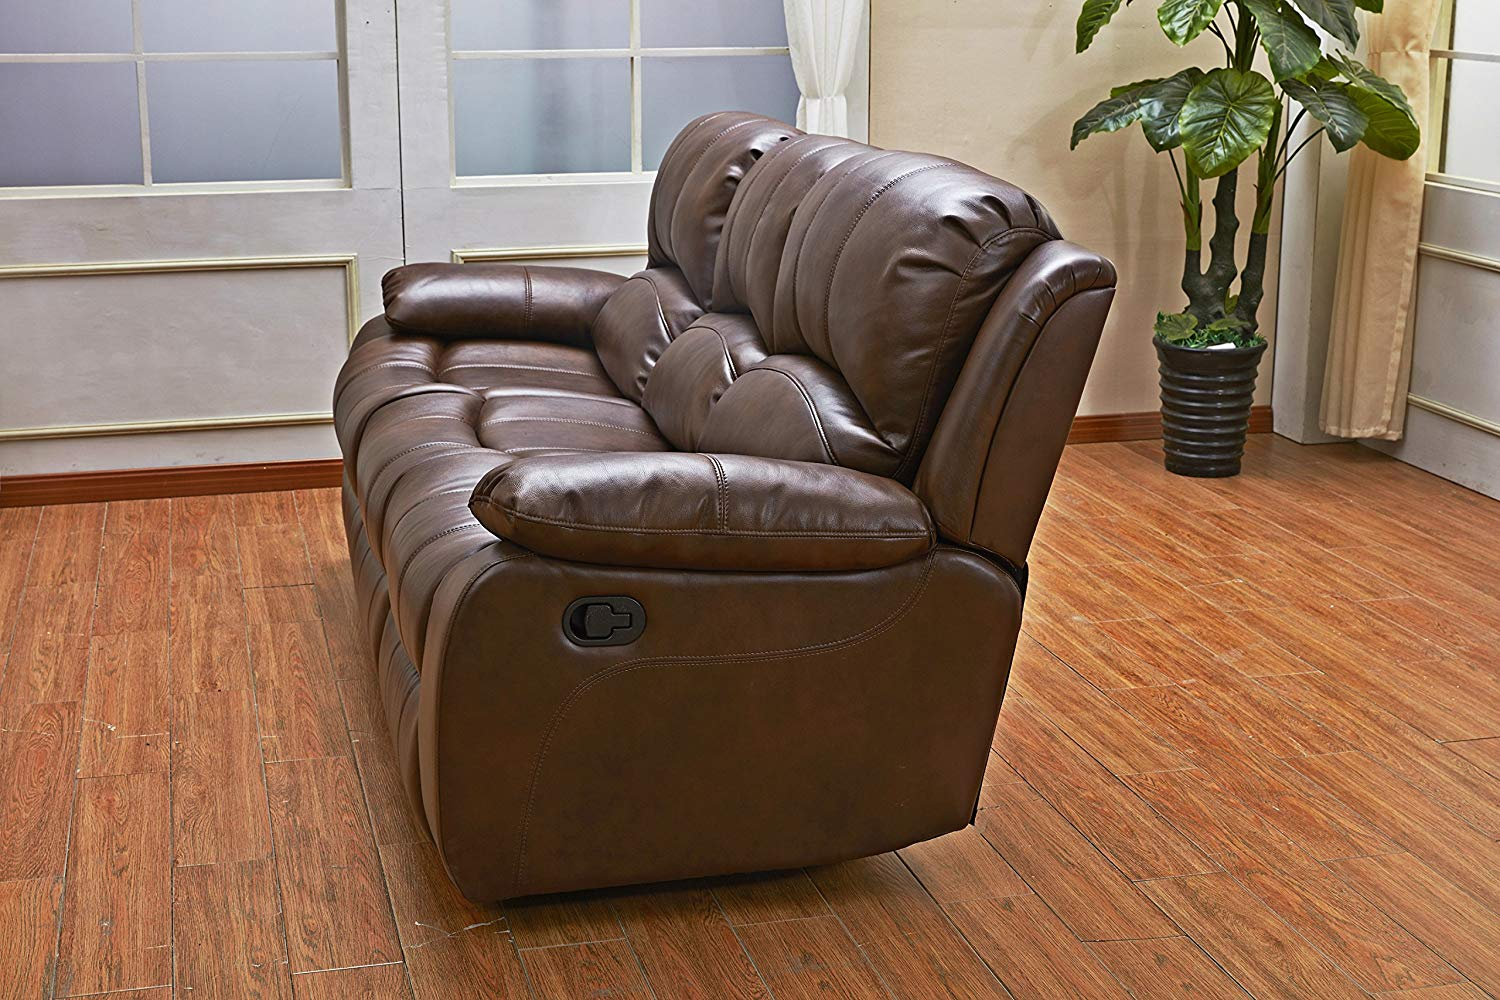 Betsy Furniture 3PC Bonded Leather Recliner Set Living Room Set in Brown, Sofa Loveseat Chair Pillow Top Backrest and Armrests 8018-Brown